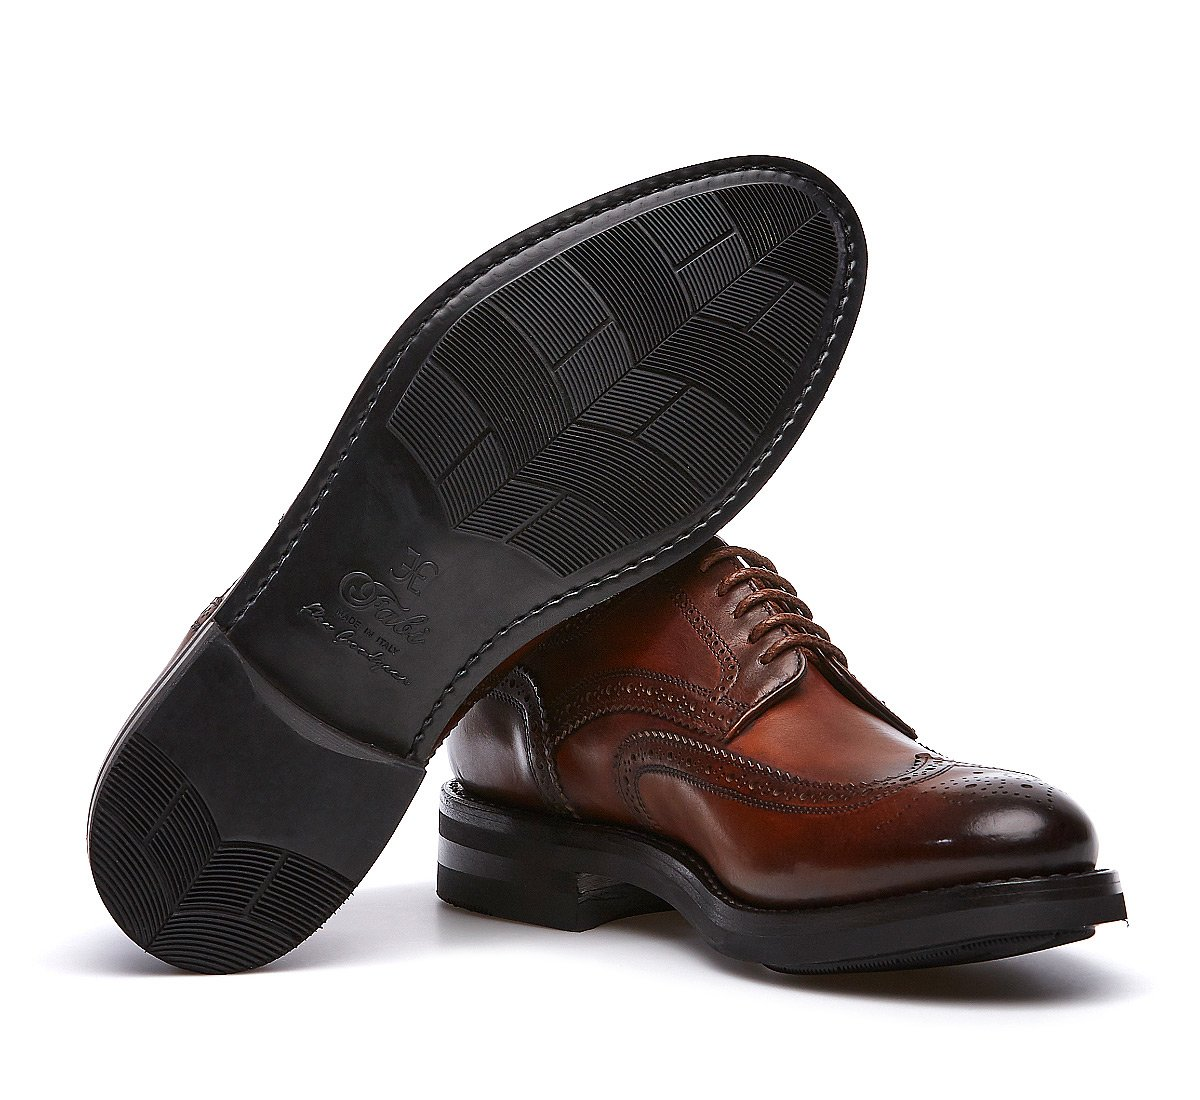 Oxford shoe in calf leather with Flex Goodyear construction